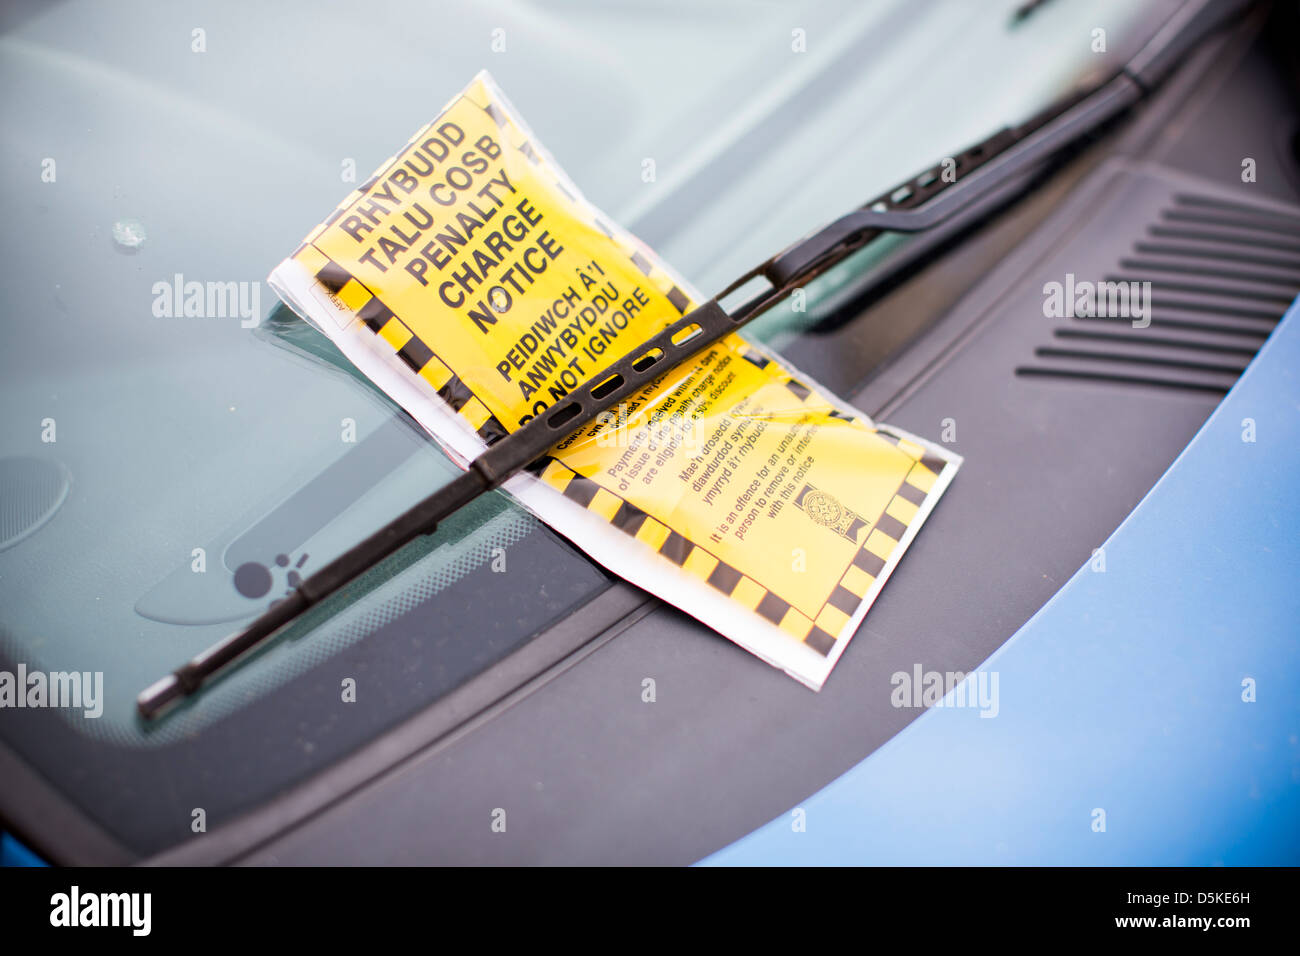 A bilingual penalty charge notice parking ticket in both English and Welsh beneath a car windscreen wiper. - Stock Image